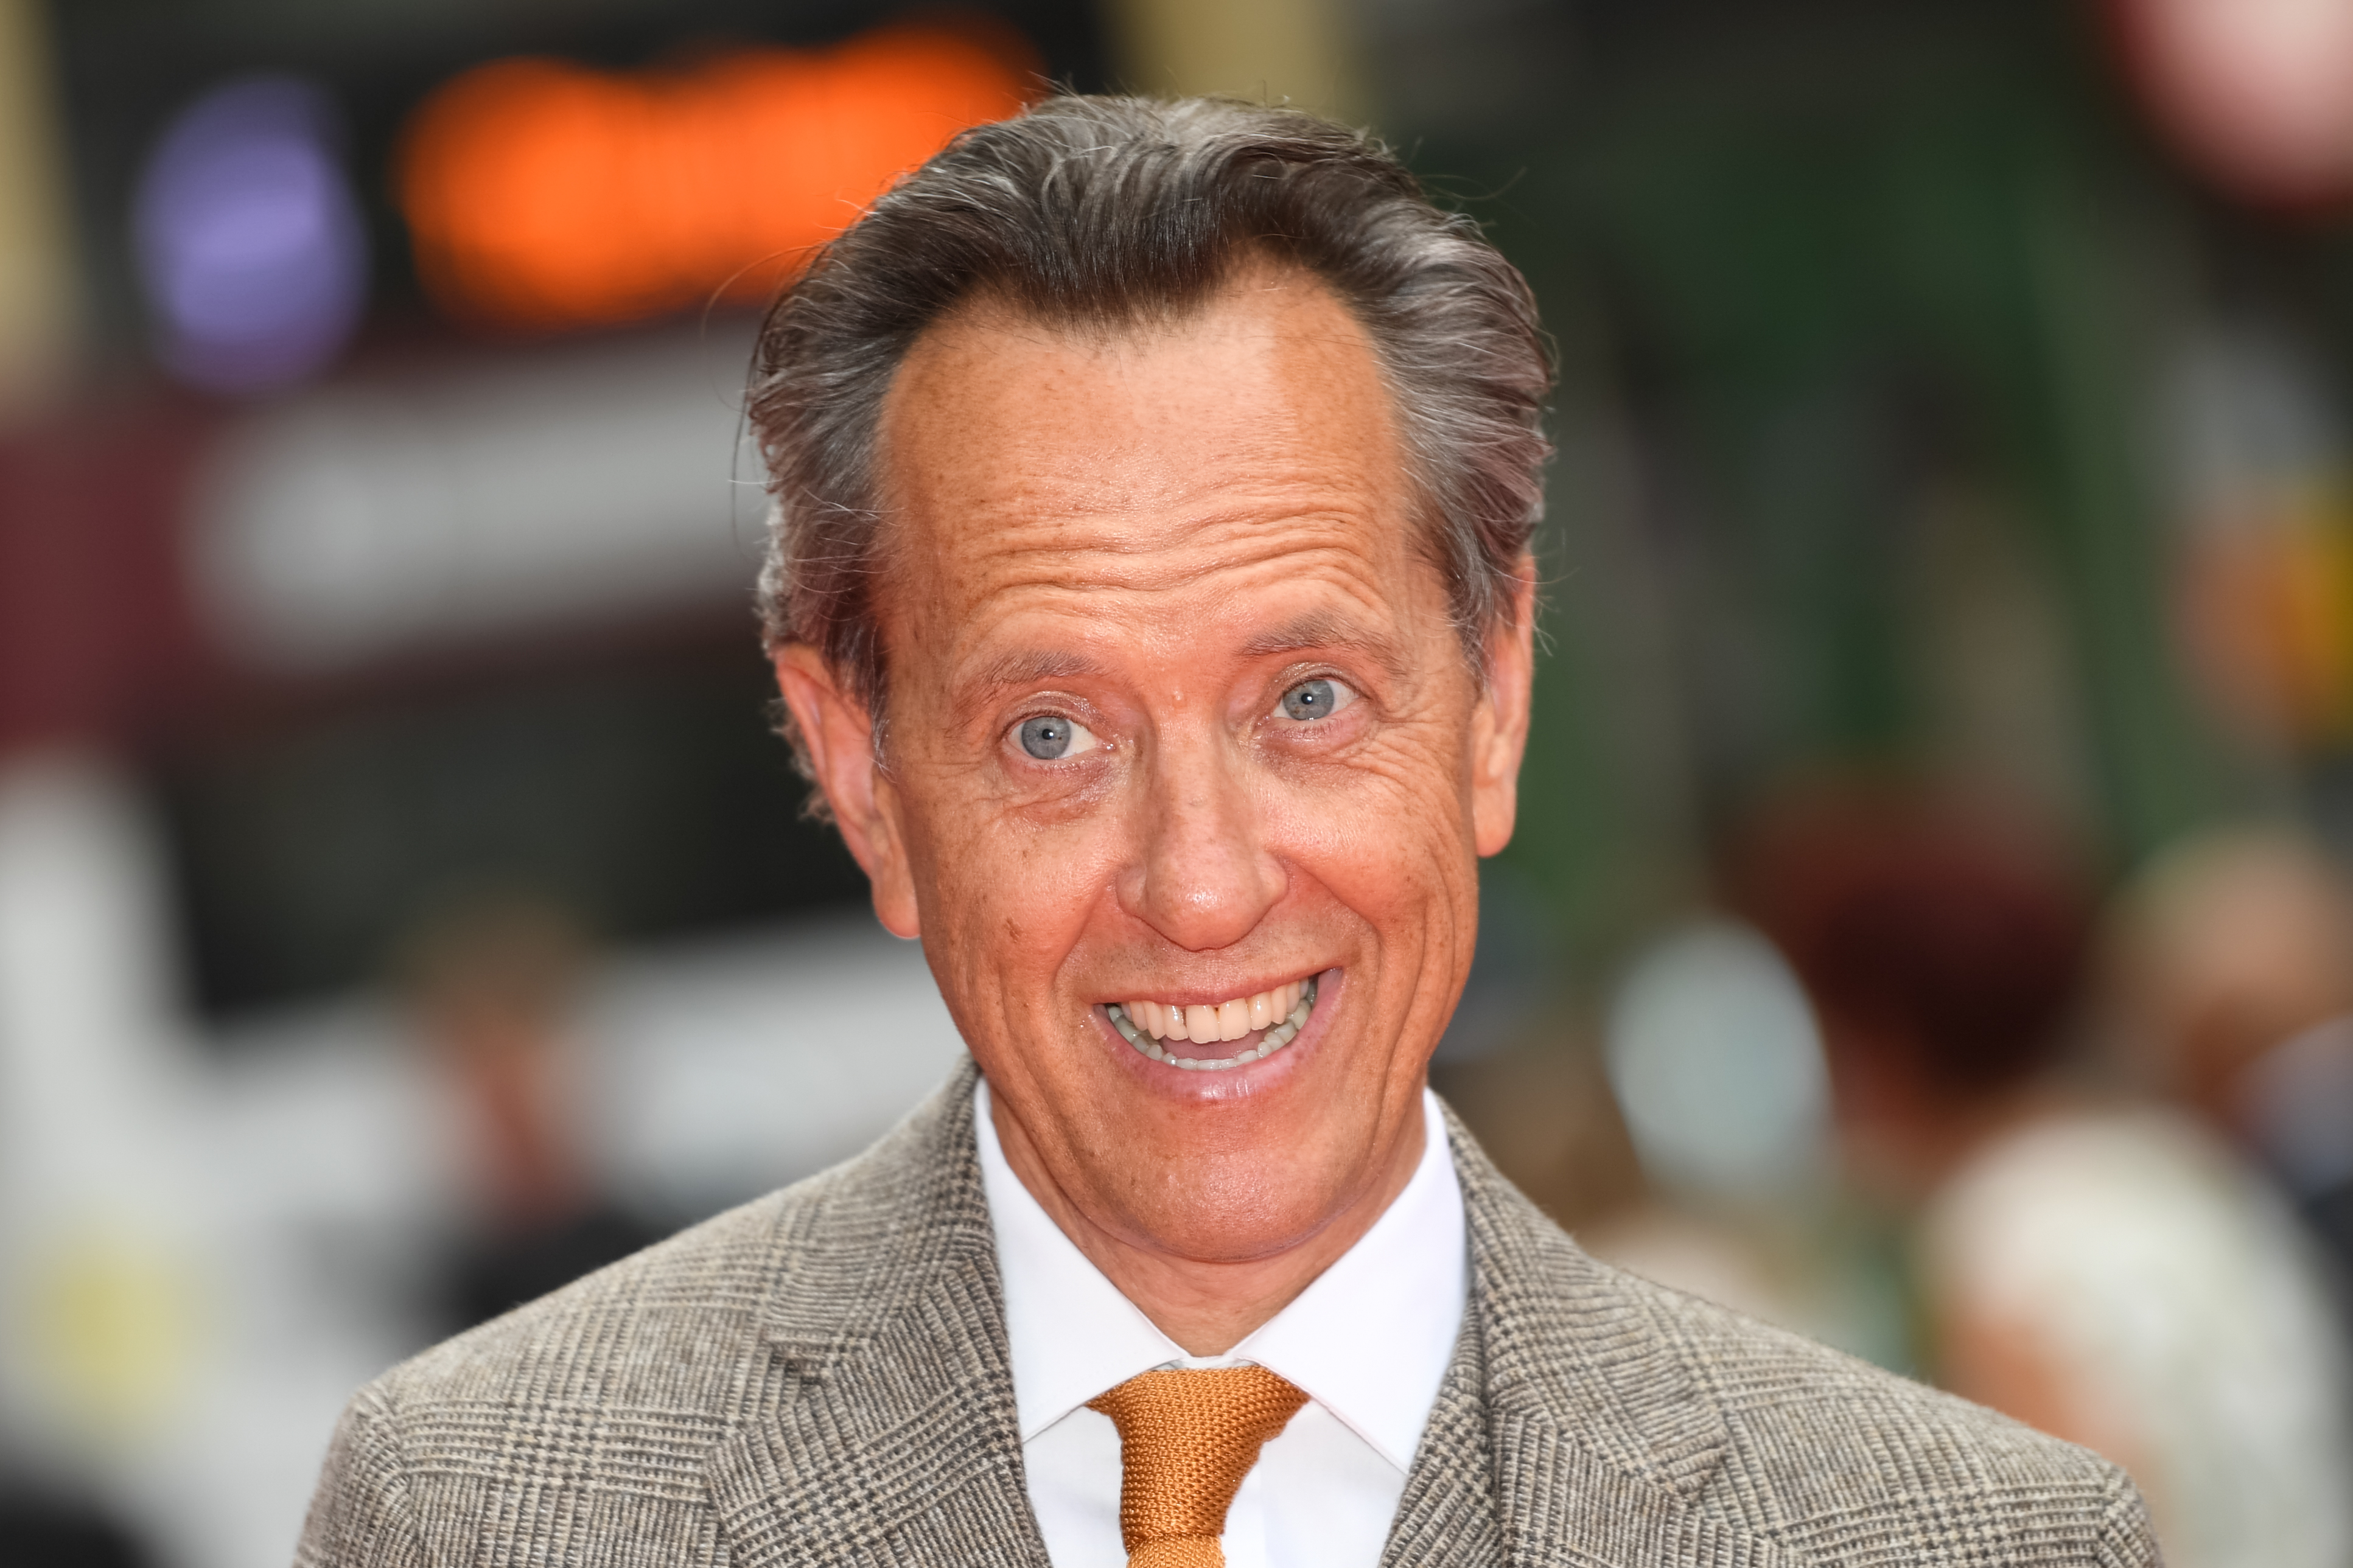 Richard E. Grant's excitement at being cast in Star Wars: Episode IX will make even Kim Kardashian smile